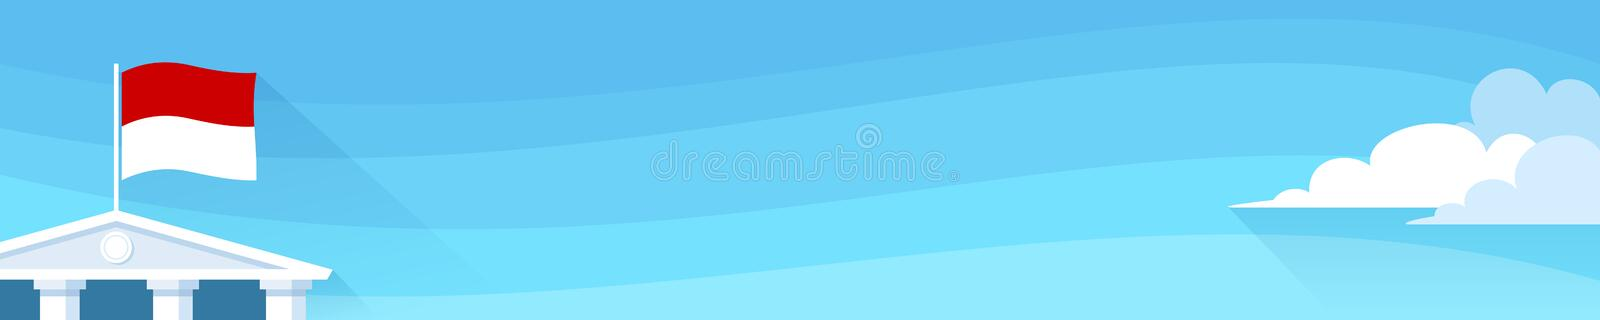 Banner with monaco flag on roof of administrative or government building vector illustration